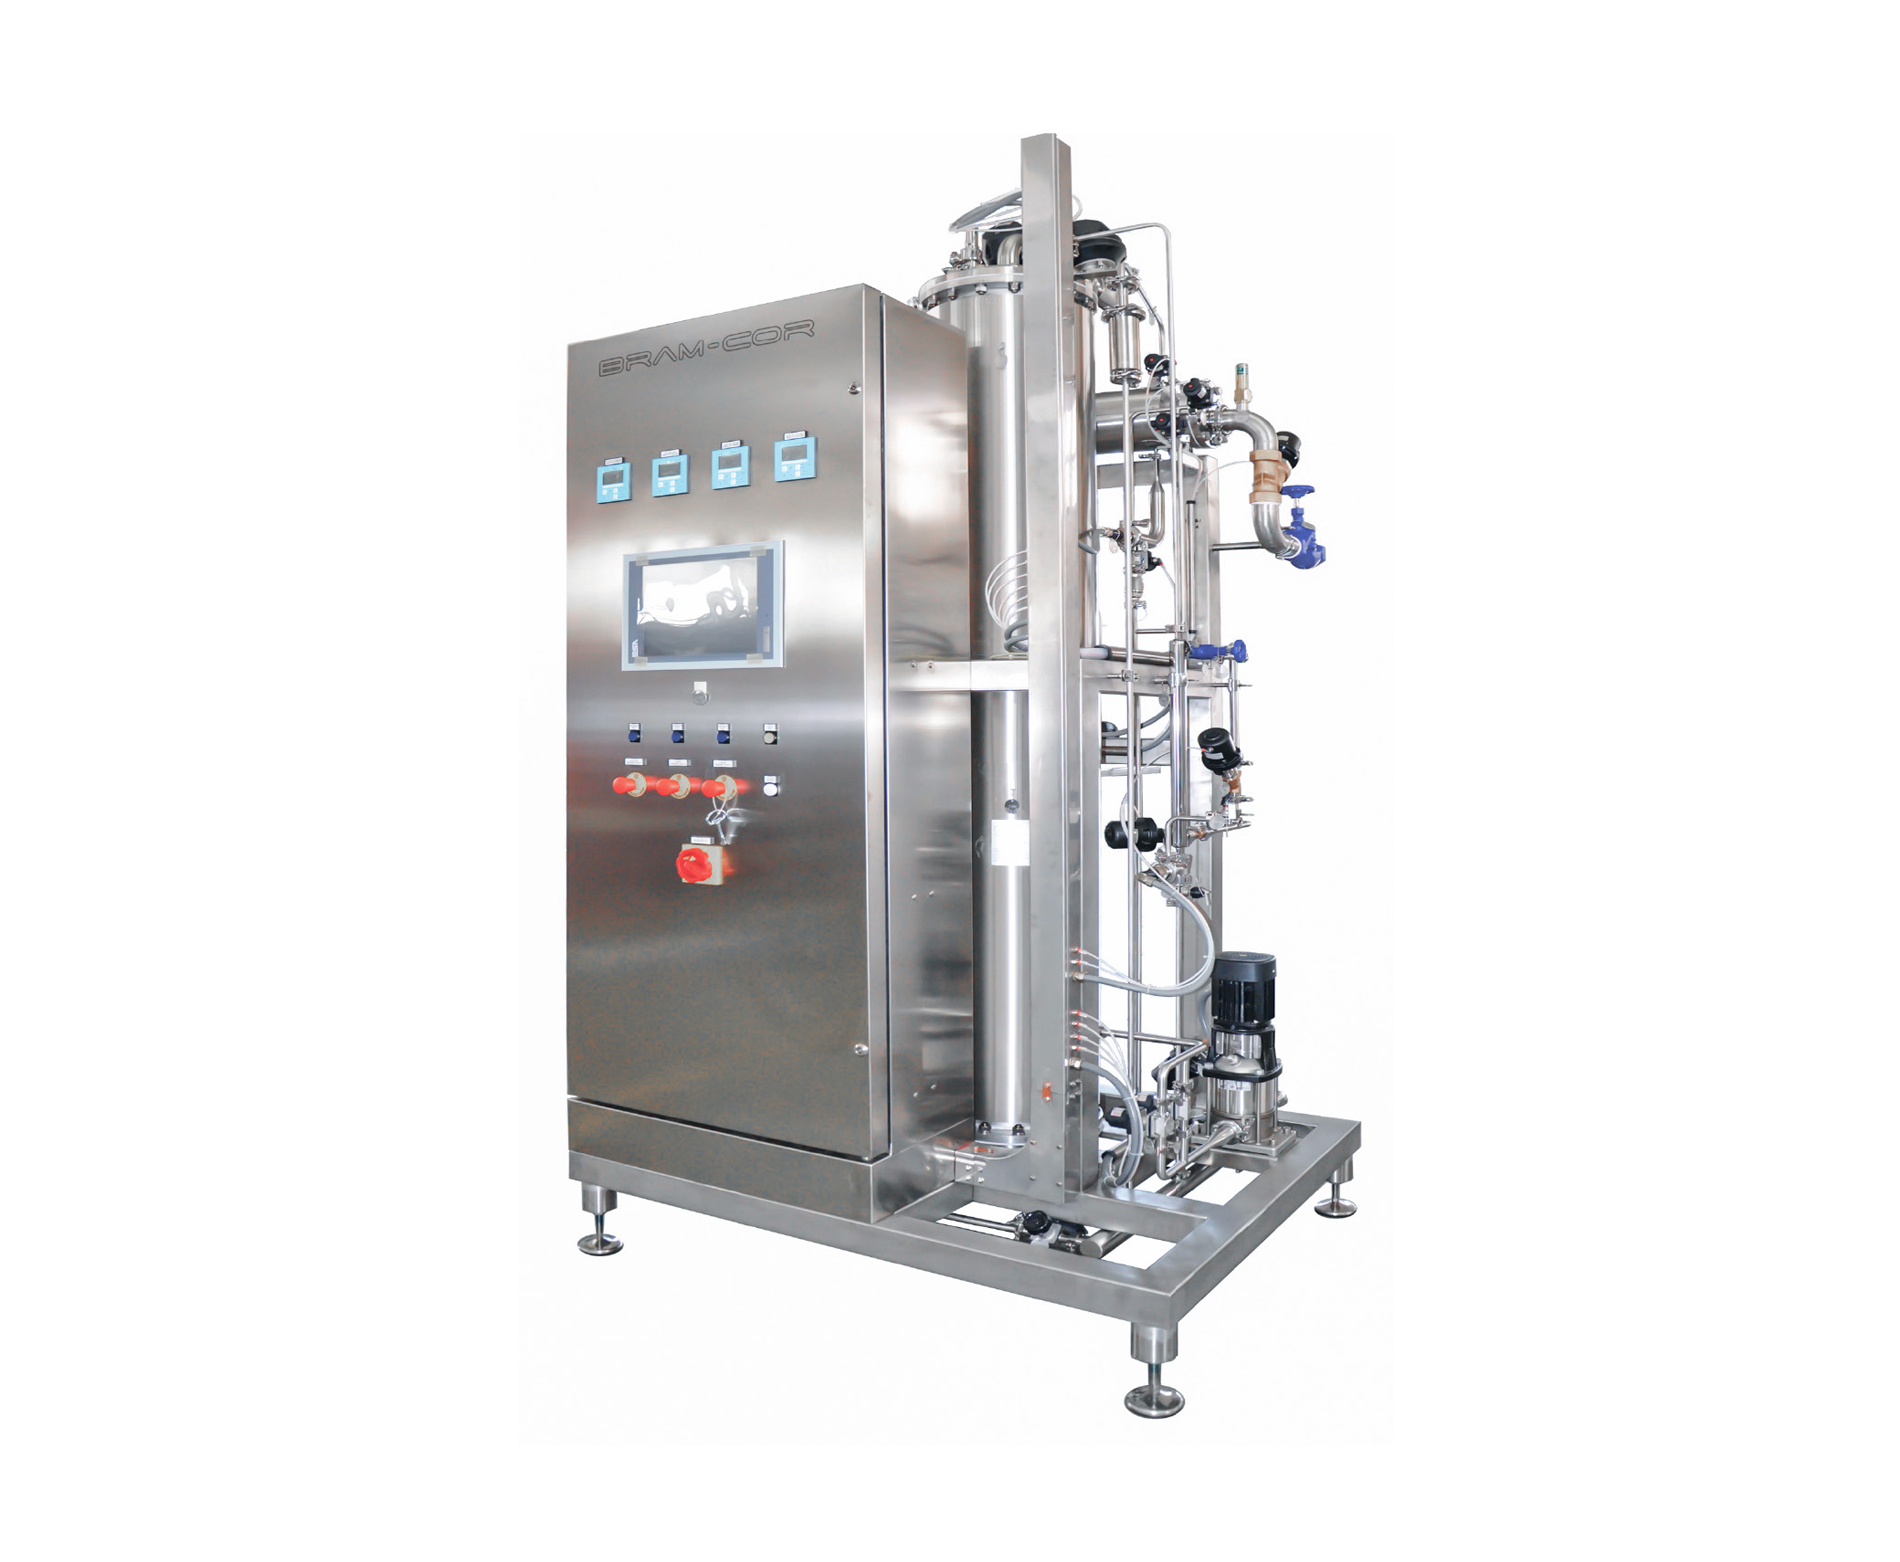 DPSG - Water Purification Systems